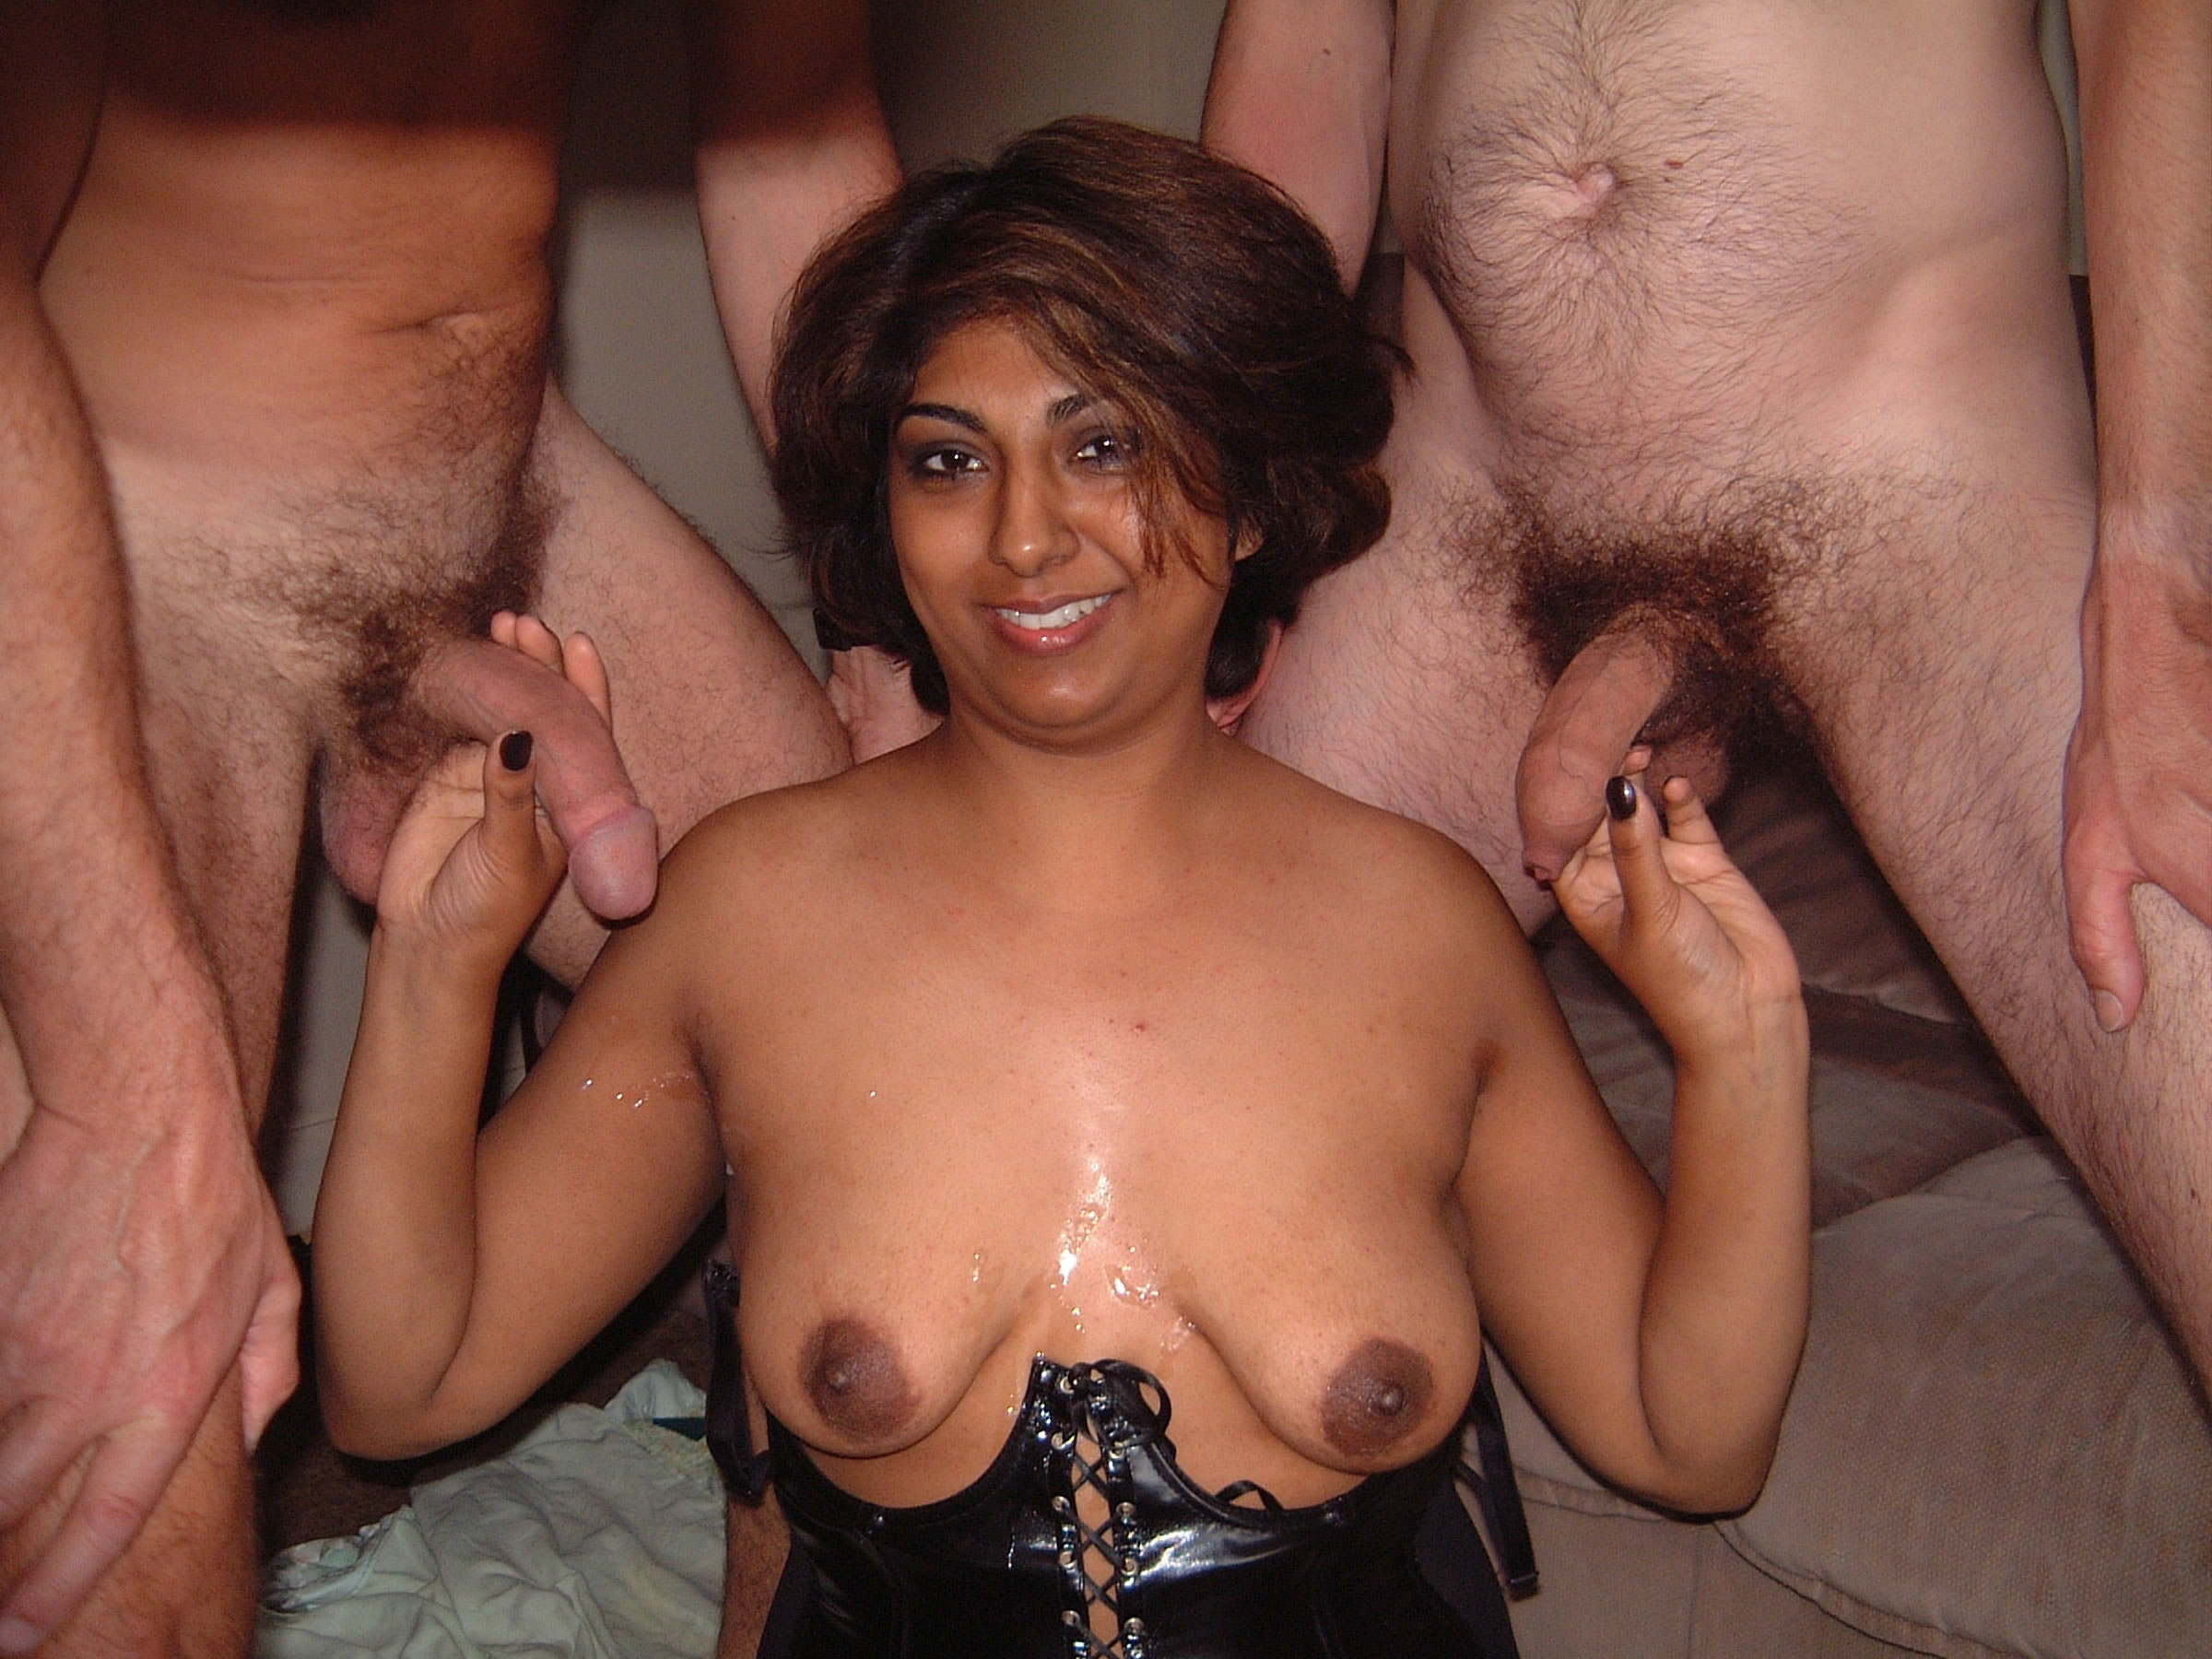 bollywood sexy bilder swingers uk